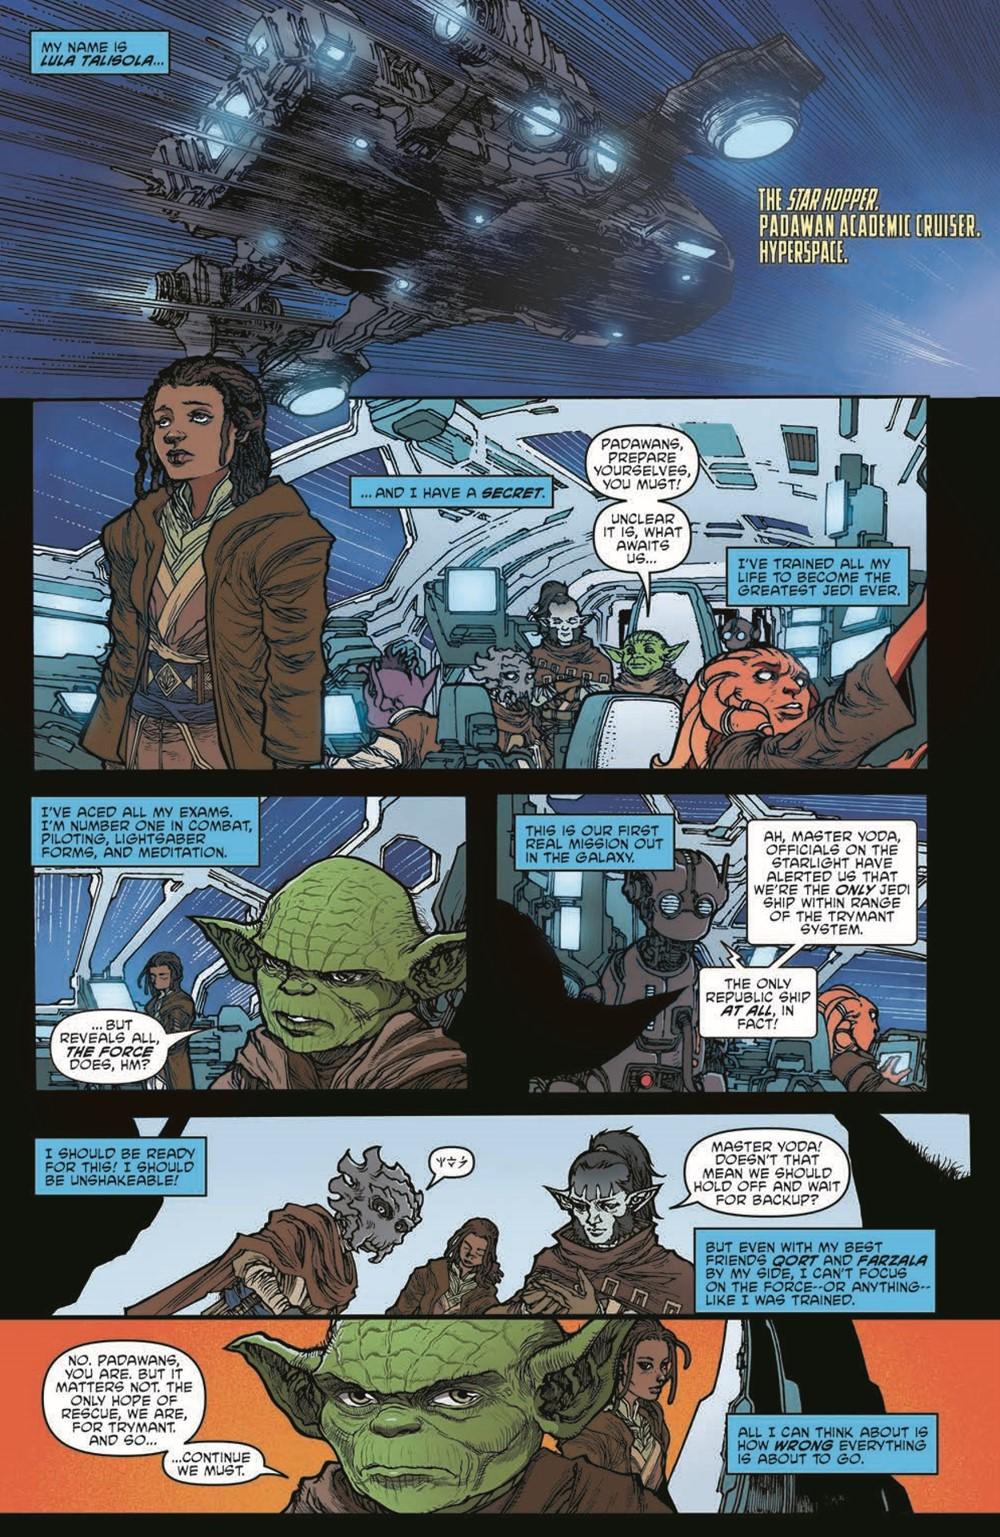 SWAHRA01-pr-4 ComicList Previews: STAR WARS THE HIGH REPUBLIC ADVENTURES #1